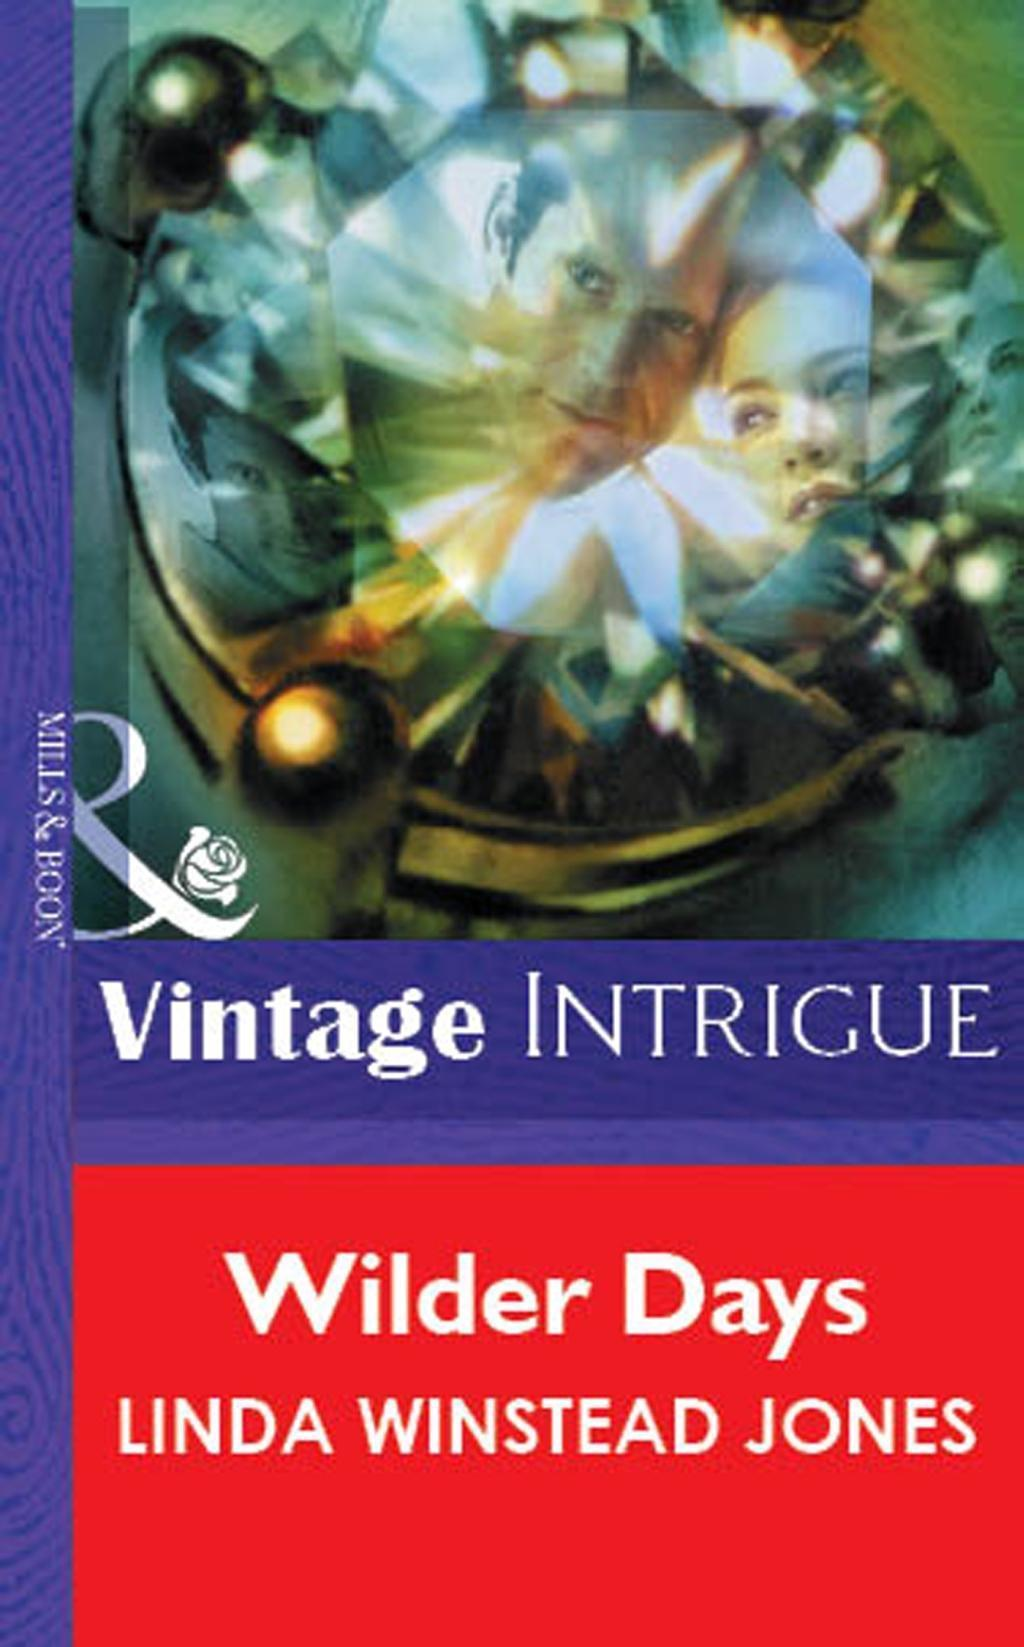 Wilder Days (Mills & Boon Vintage Intrigue)